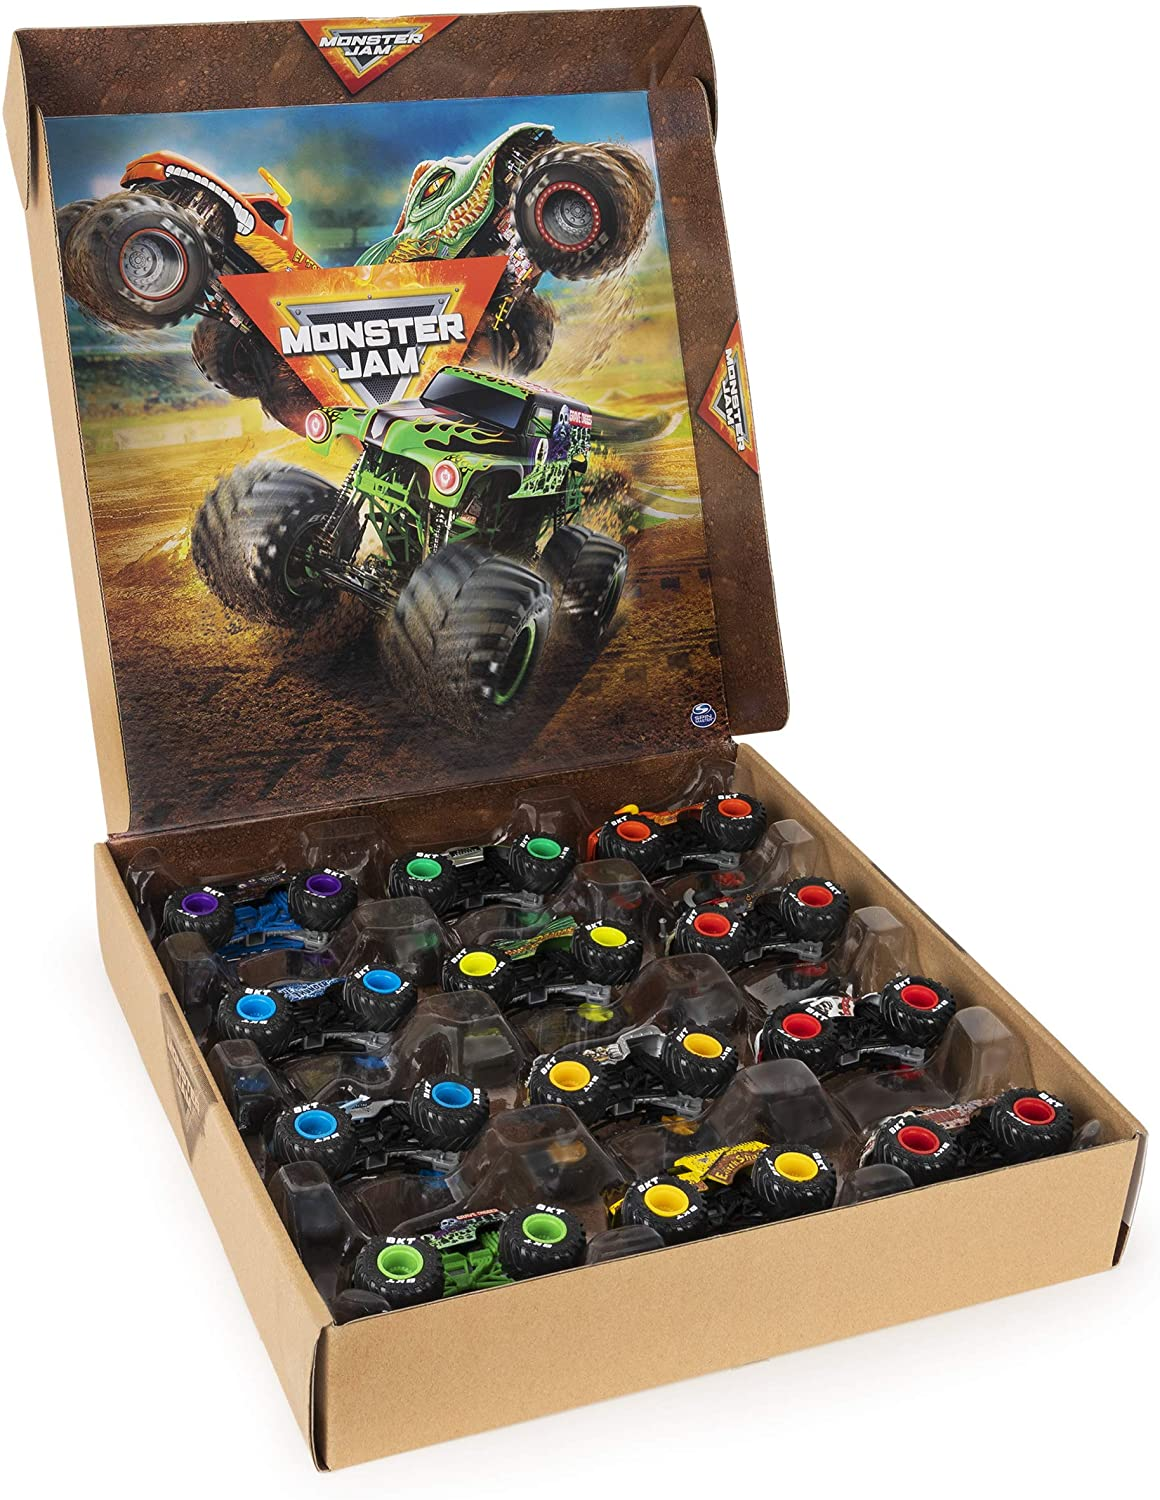 Monster Jam, Official 12-Pack of 1:64 Scale Die-Cast Monster Trucks, DHgate Exclusive